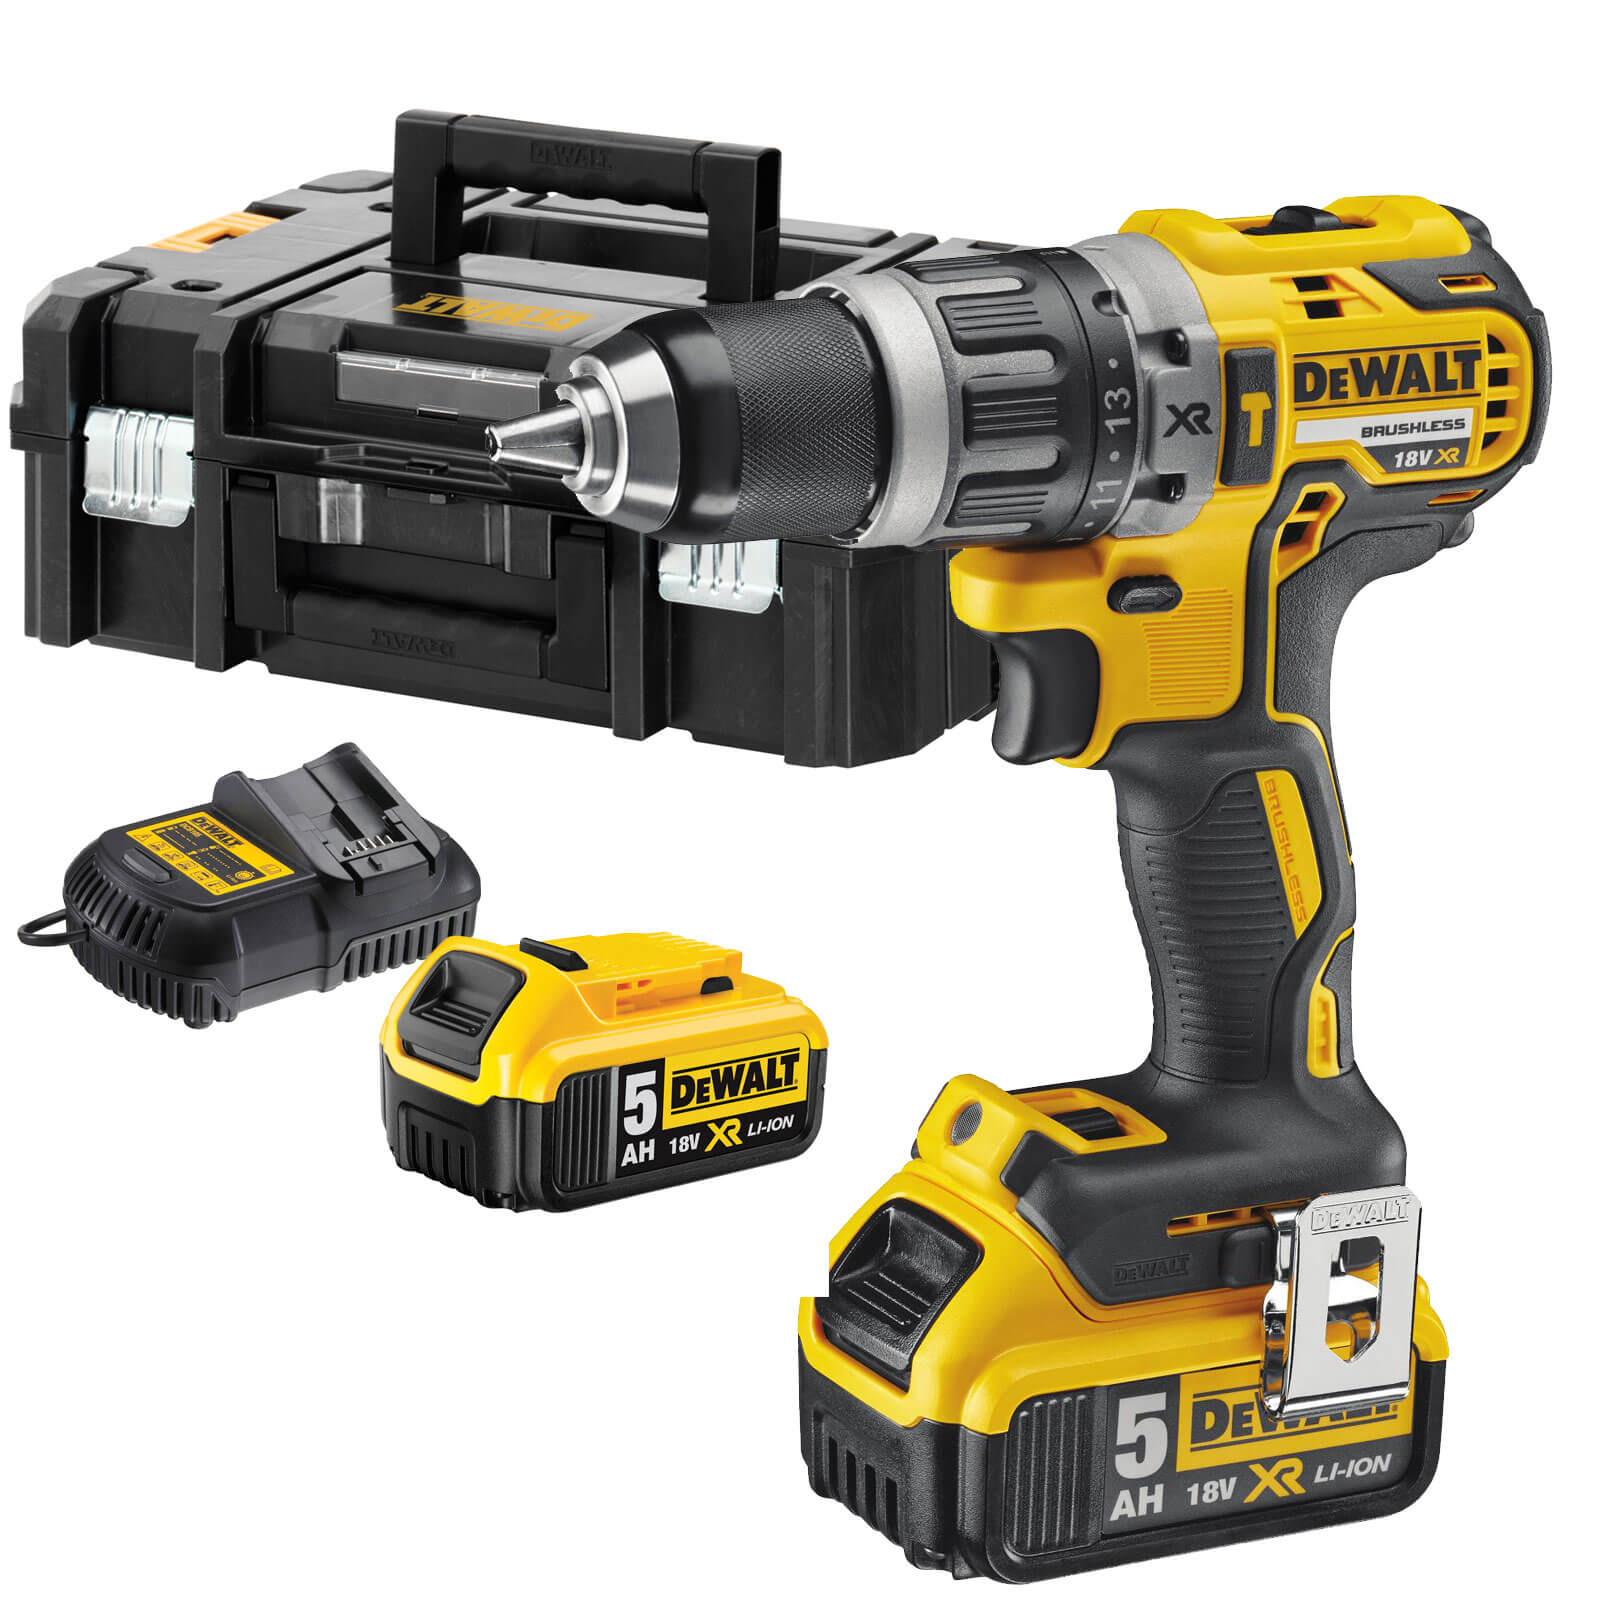 Image of DeWalt DCD796P2 18v Cordless XR Brushless Combi Drill with 2 Lithium Ion Batteries 5ah